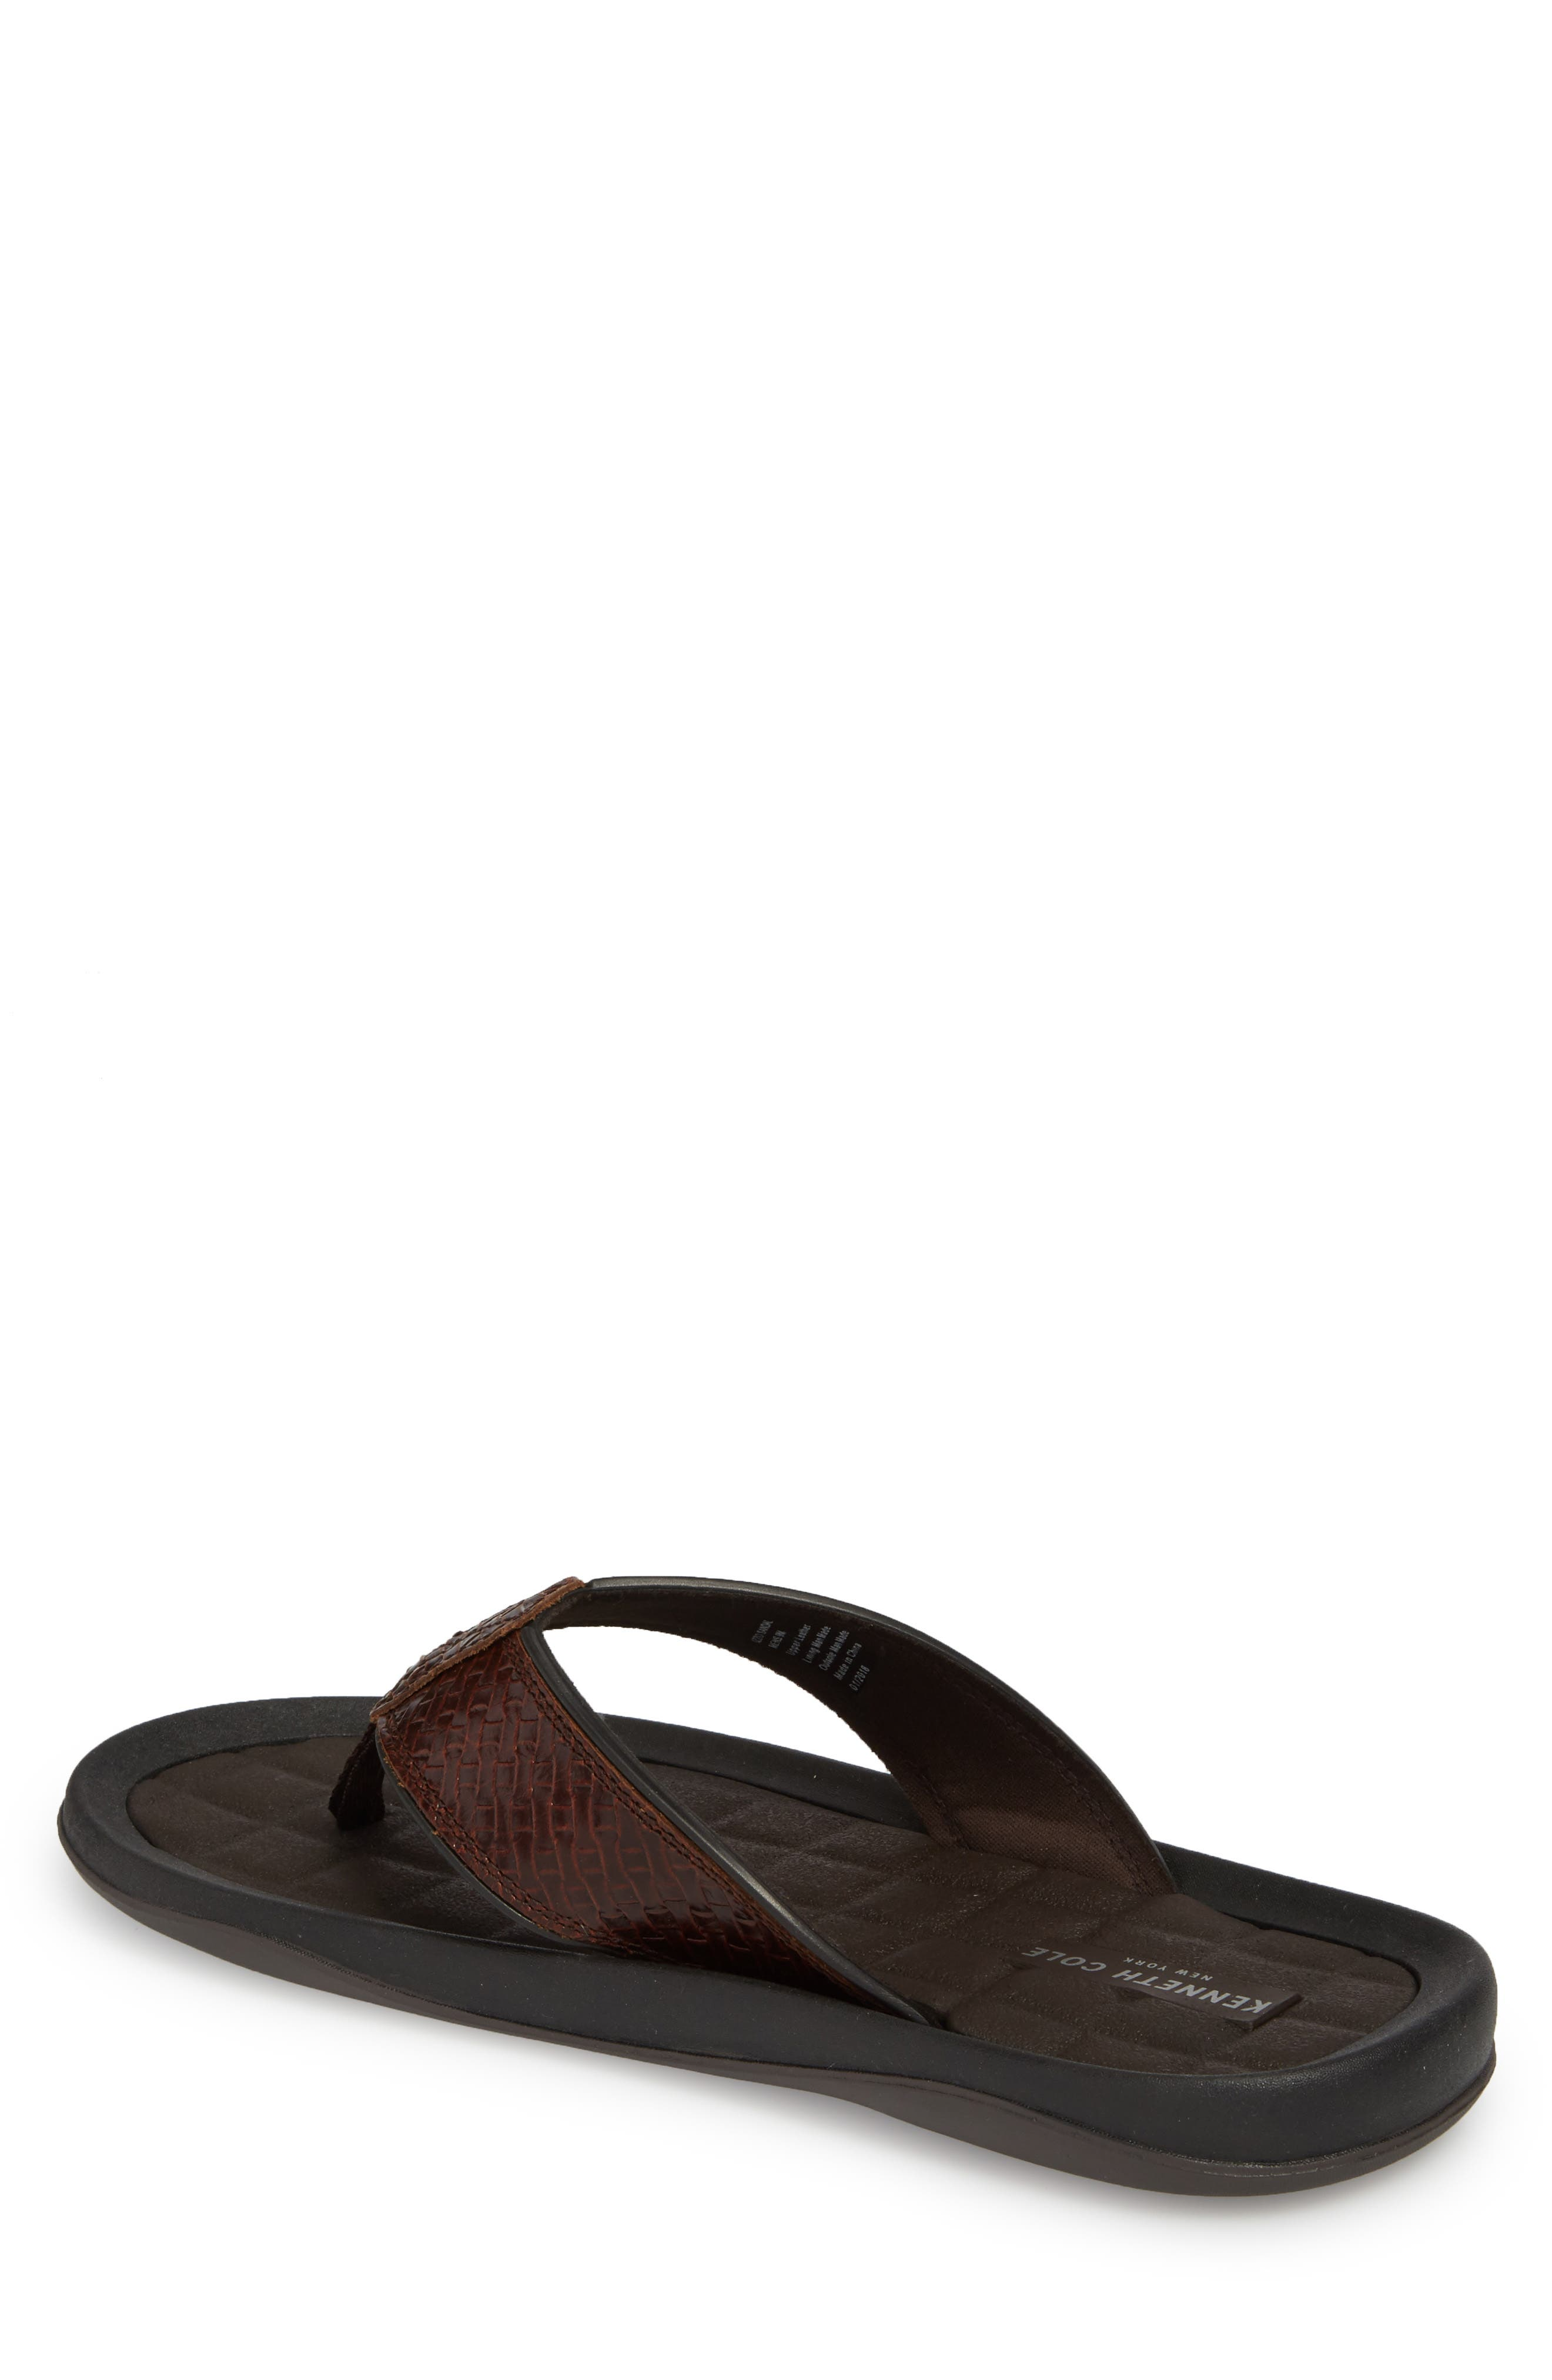 Izzo Embossed Flip Flop,                             Alternate thumbnail 2, color,                             Brown Leather